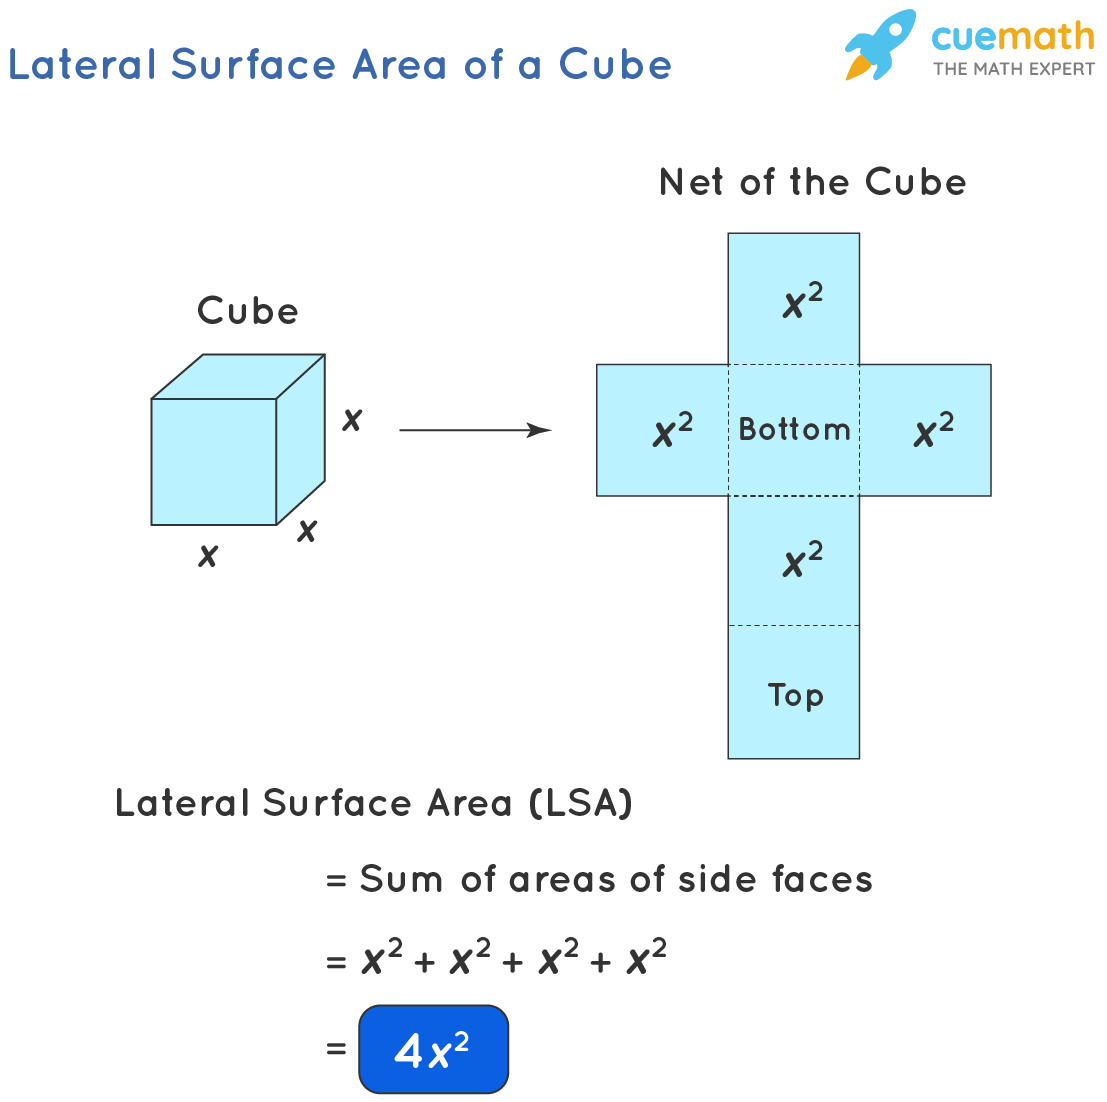 Lateral surface area of a cube of side length x is 4 x squared.